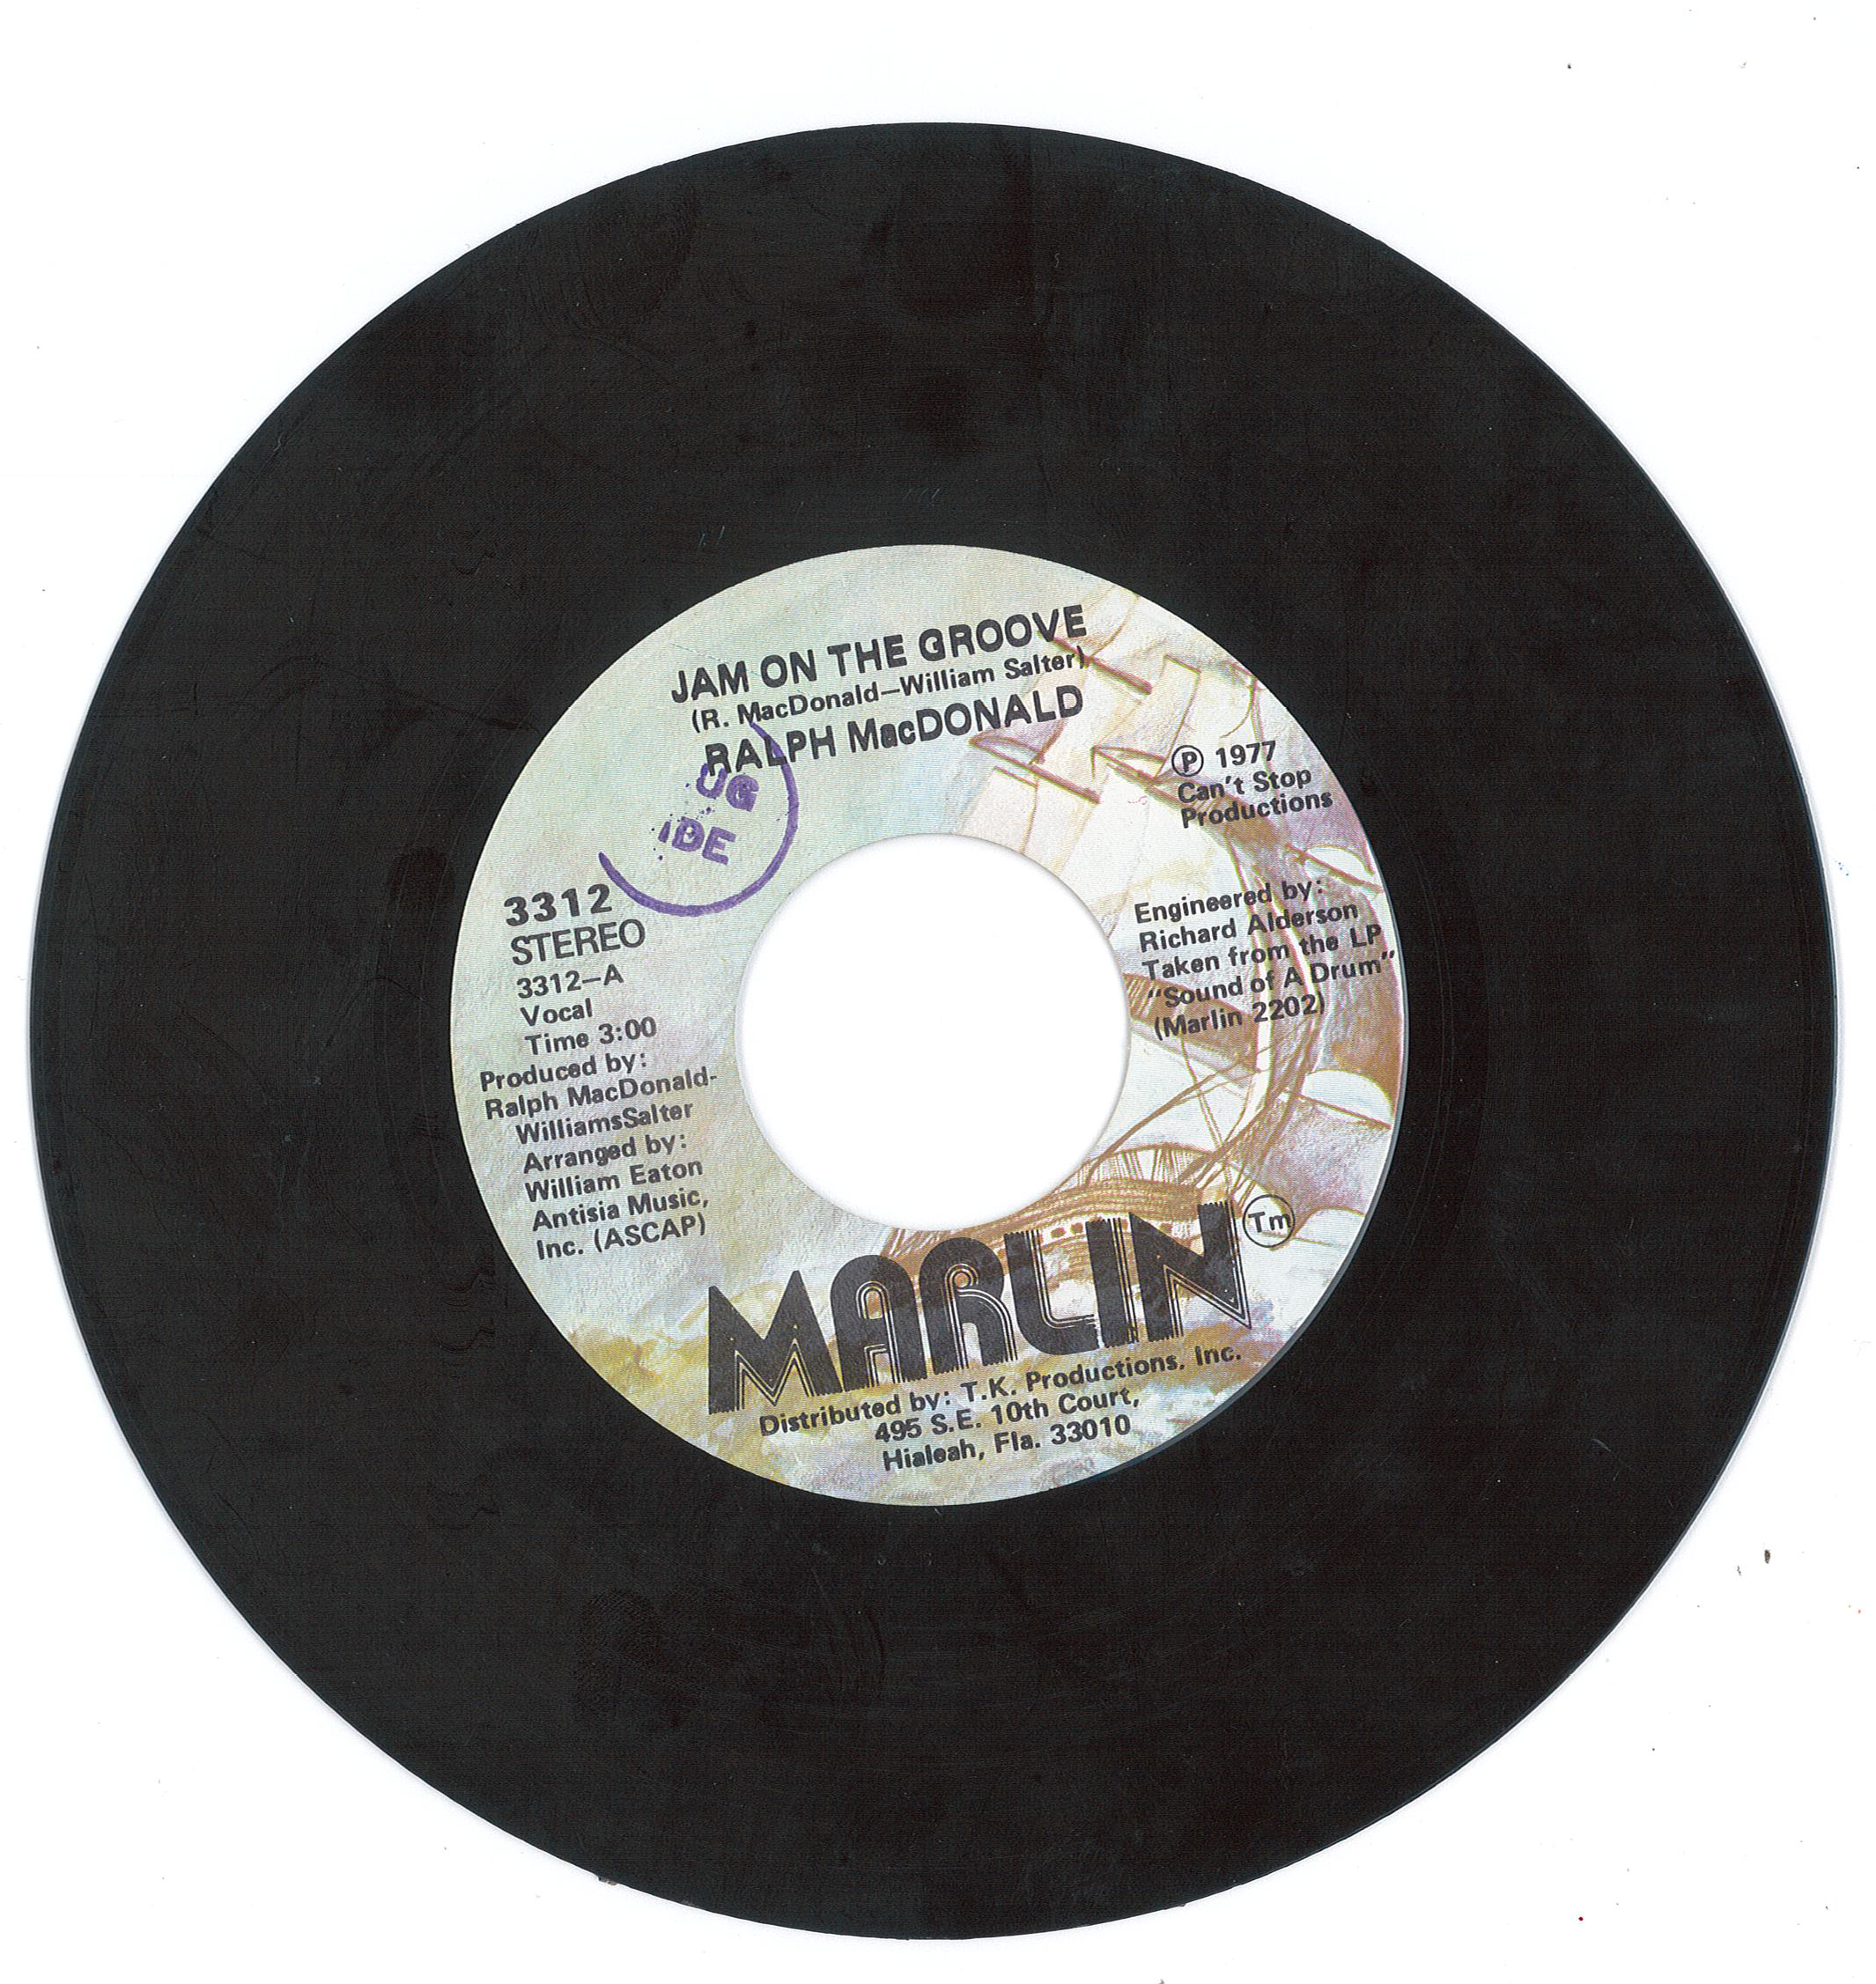 WLWLTDOO-1977-45-MACDONALD-JAM_ON_THE_GROOVE-3312-A.png